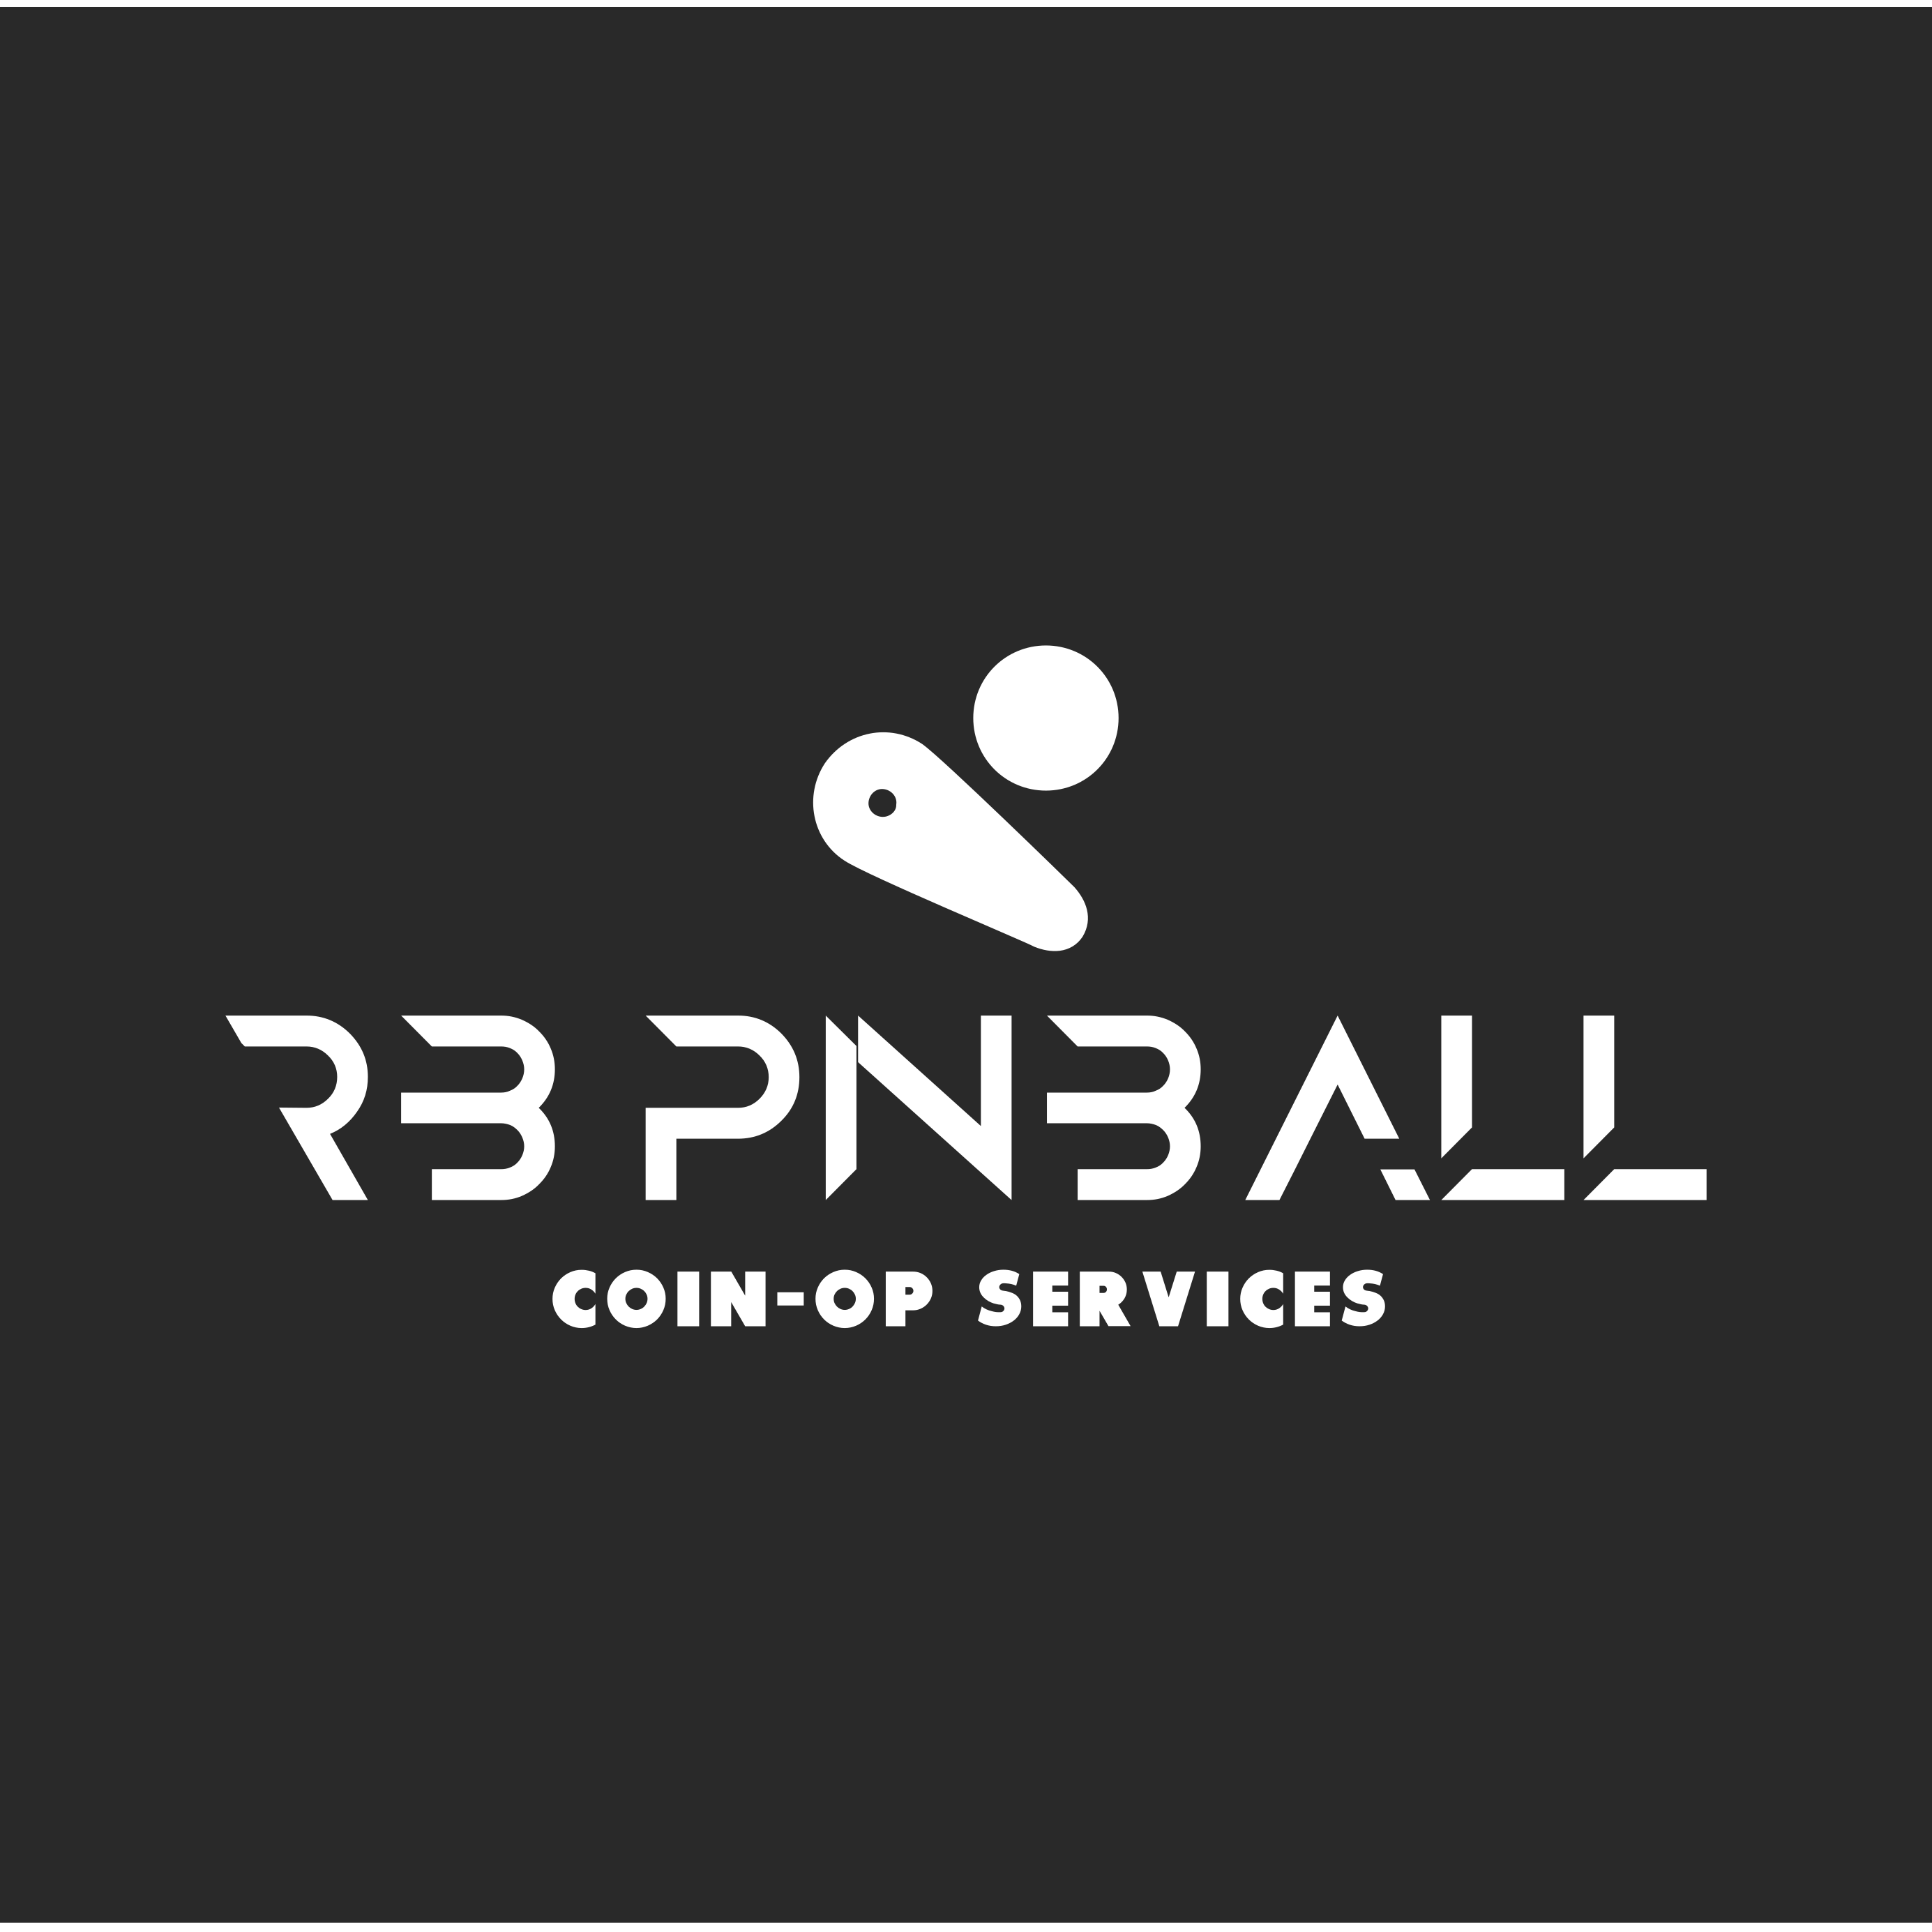 RB Pinball & Coin-Op Services image 7